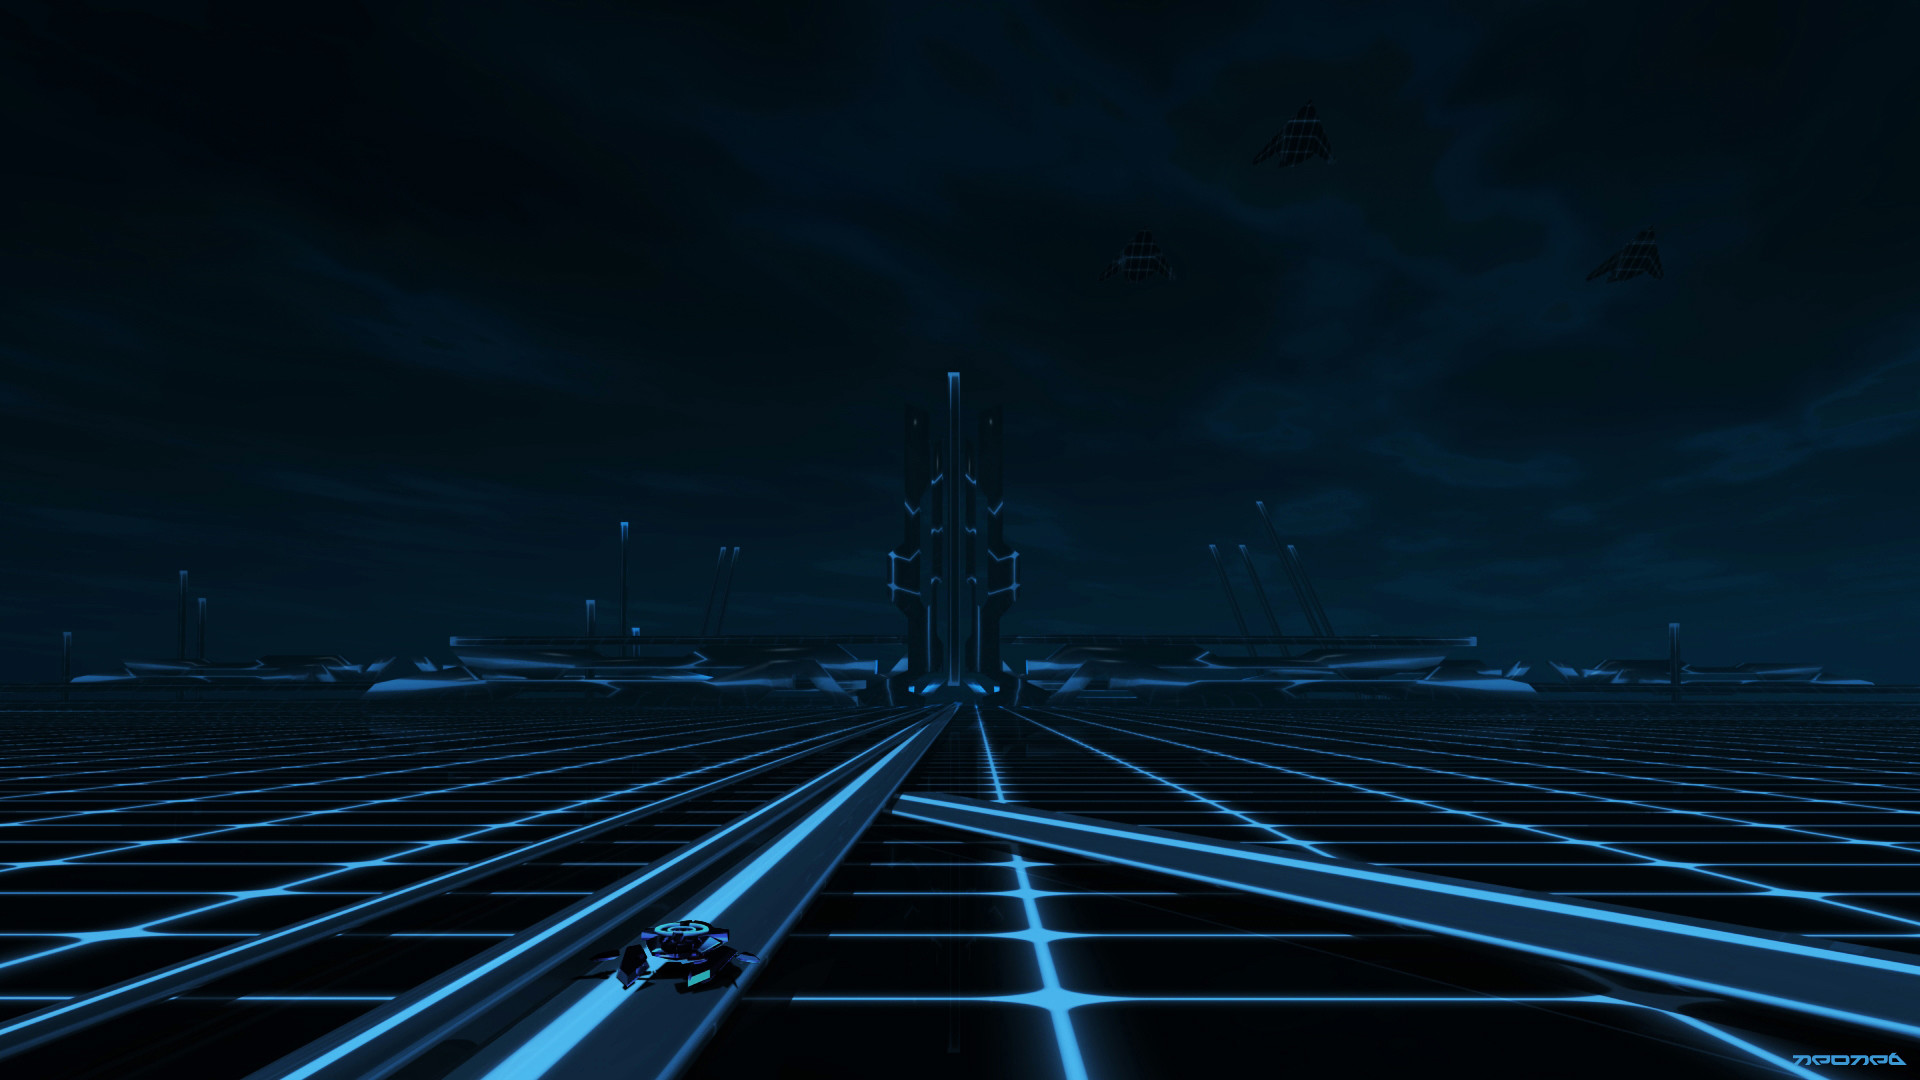 WinCustomize: Explore : Wallpapers : TRON The grid